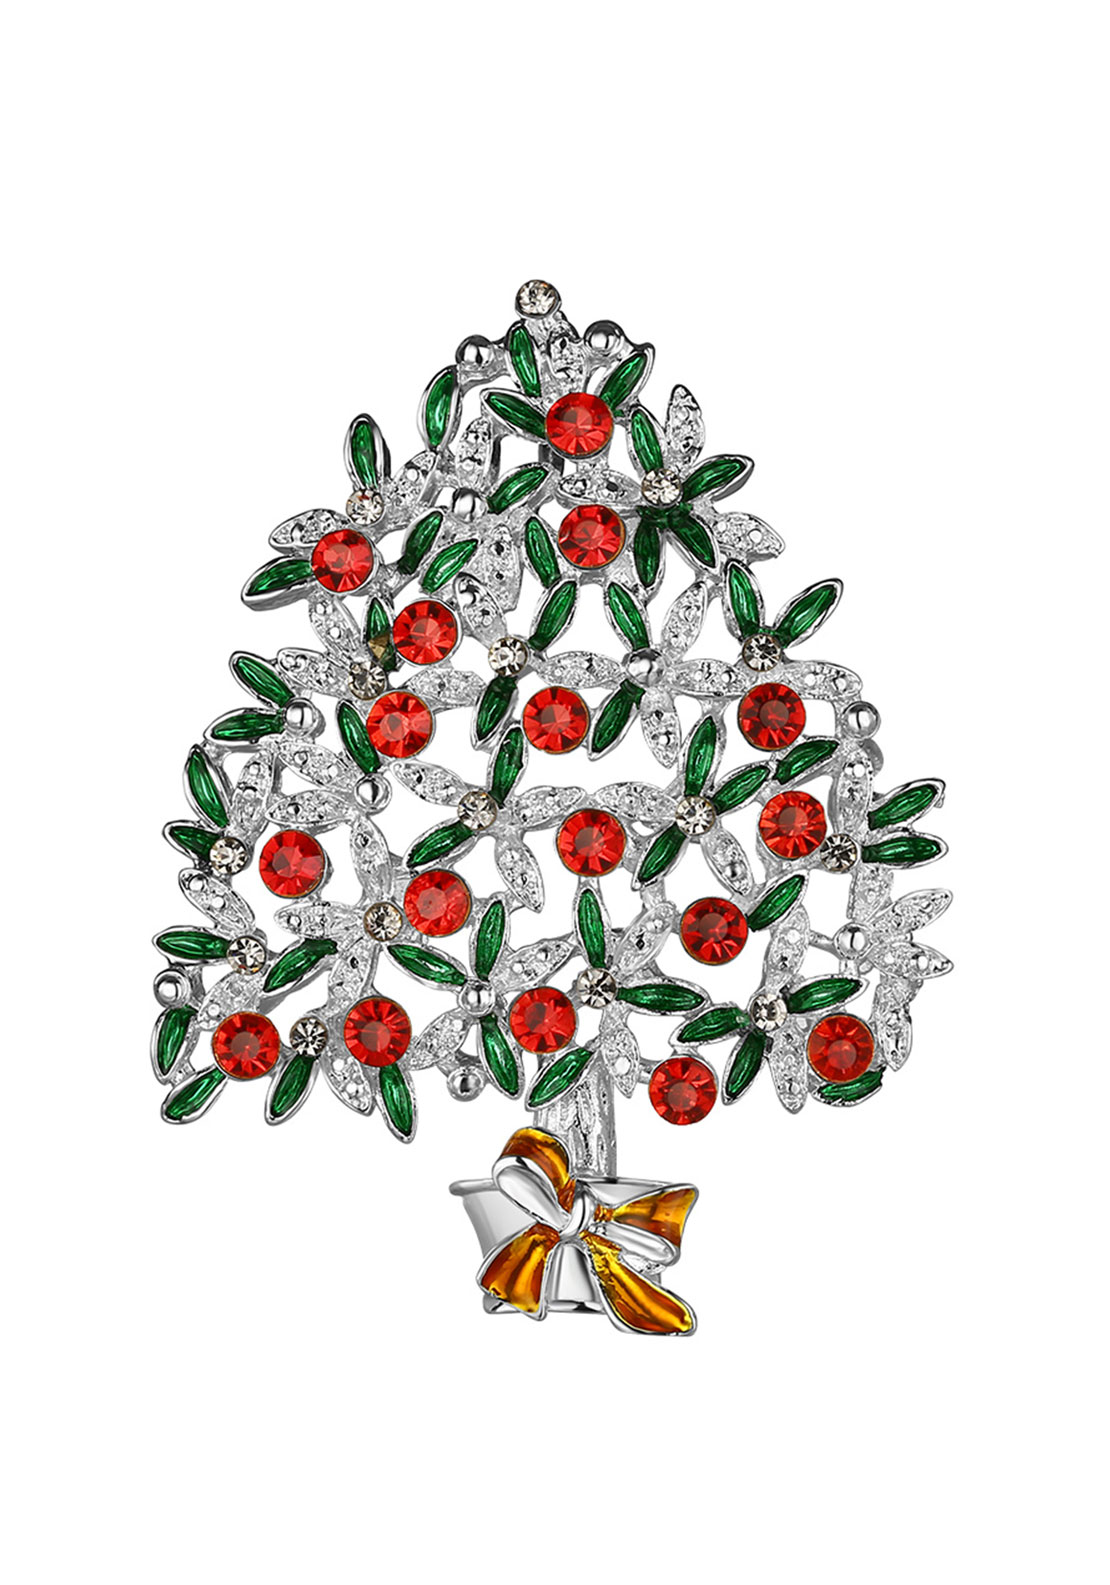 Newbridge Christmas Hanging Tree with Coloured Stones Decoration